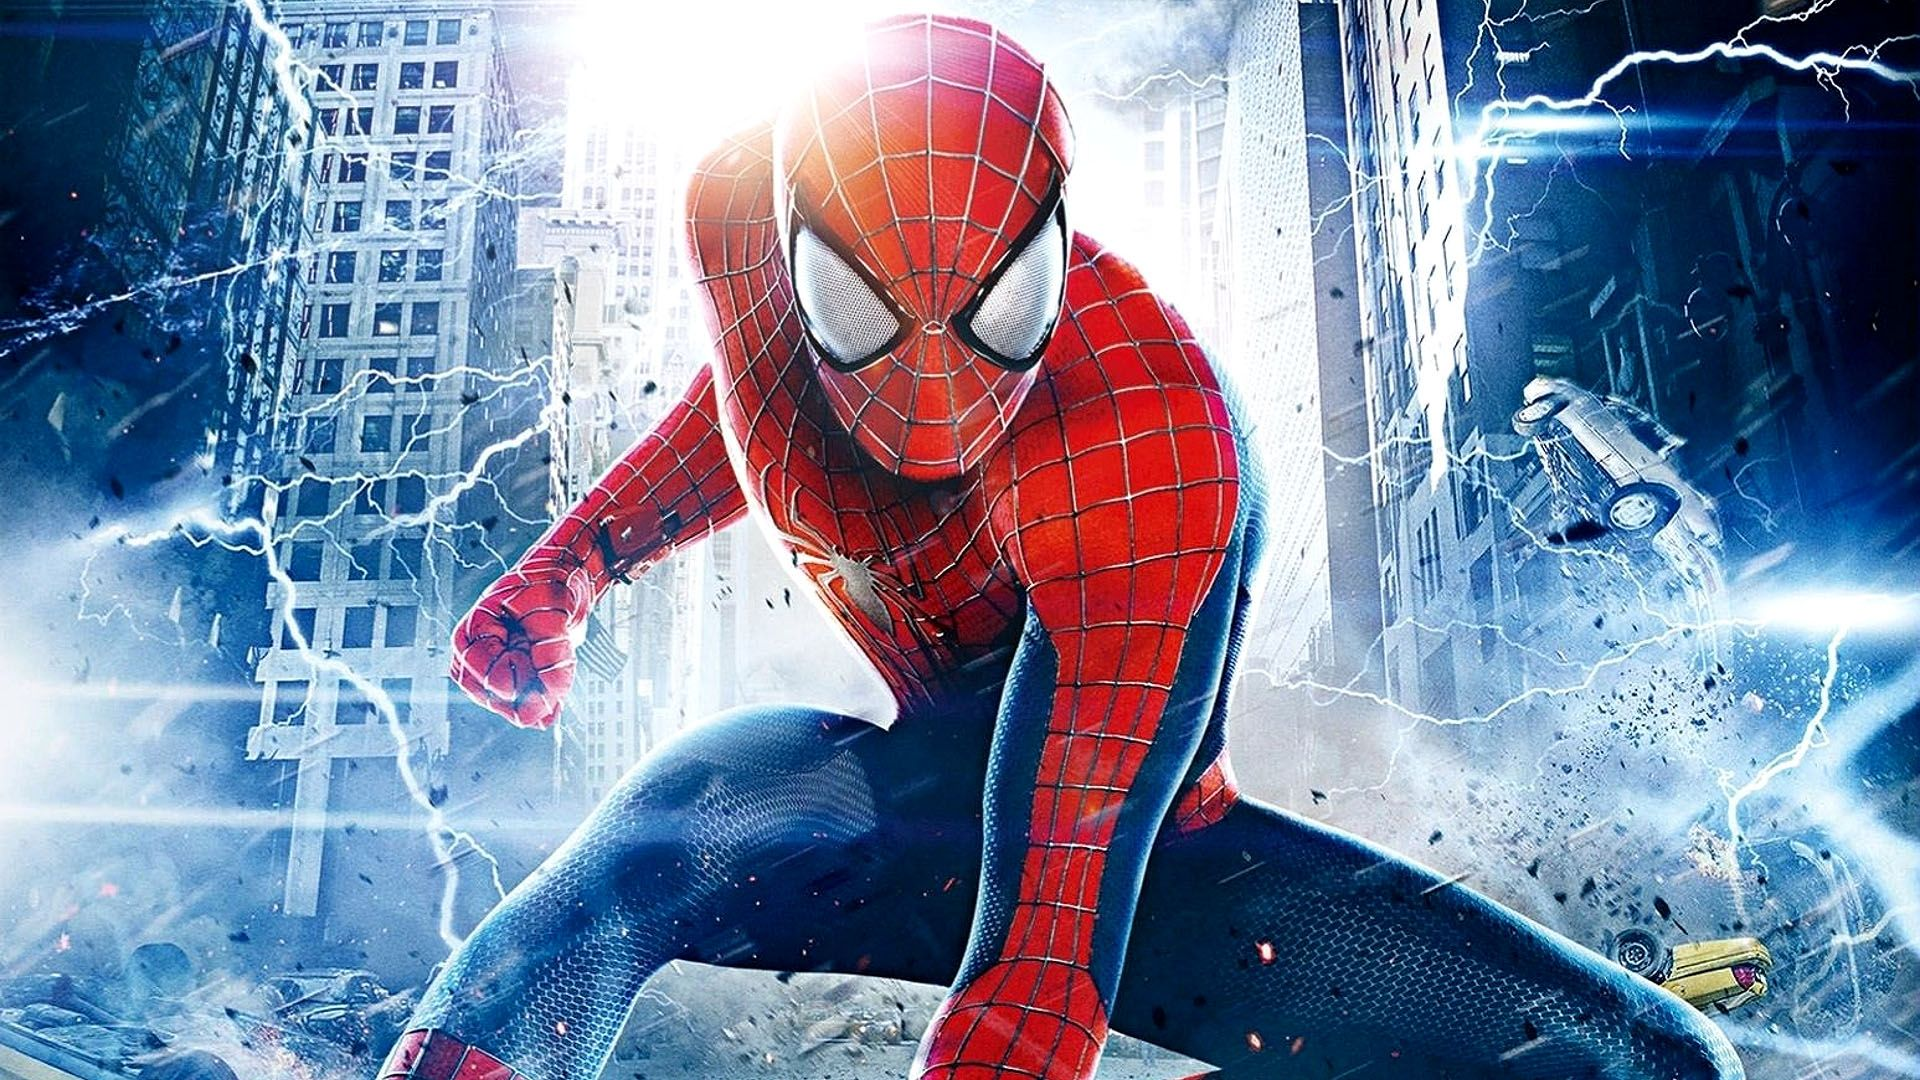 the amazing spiderman wallpapers hd facebook cover photos | hd